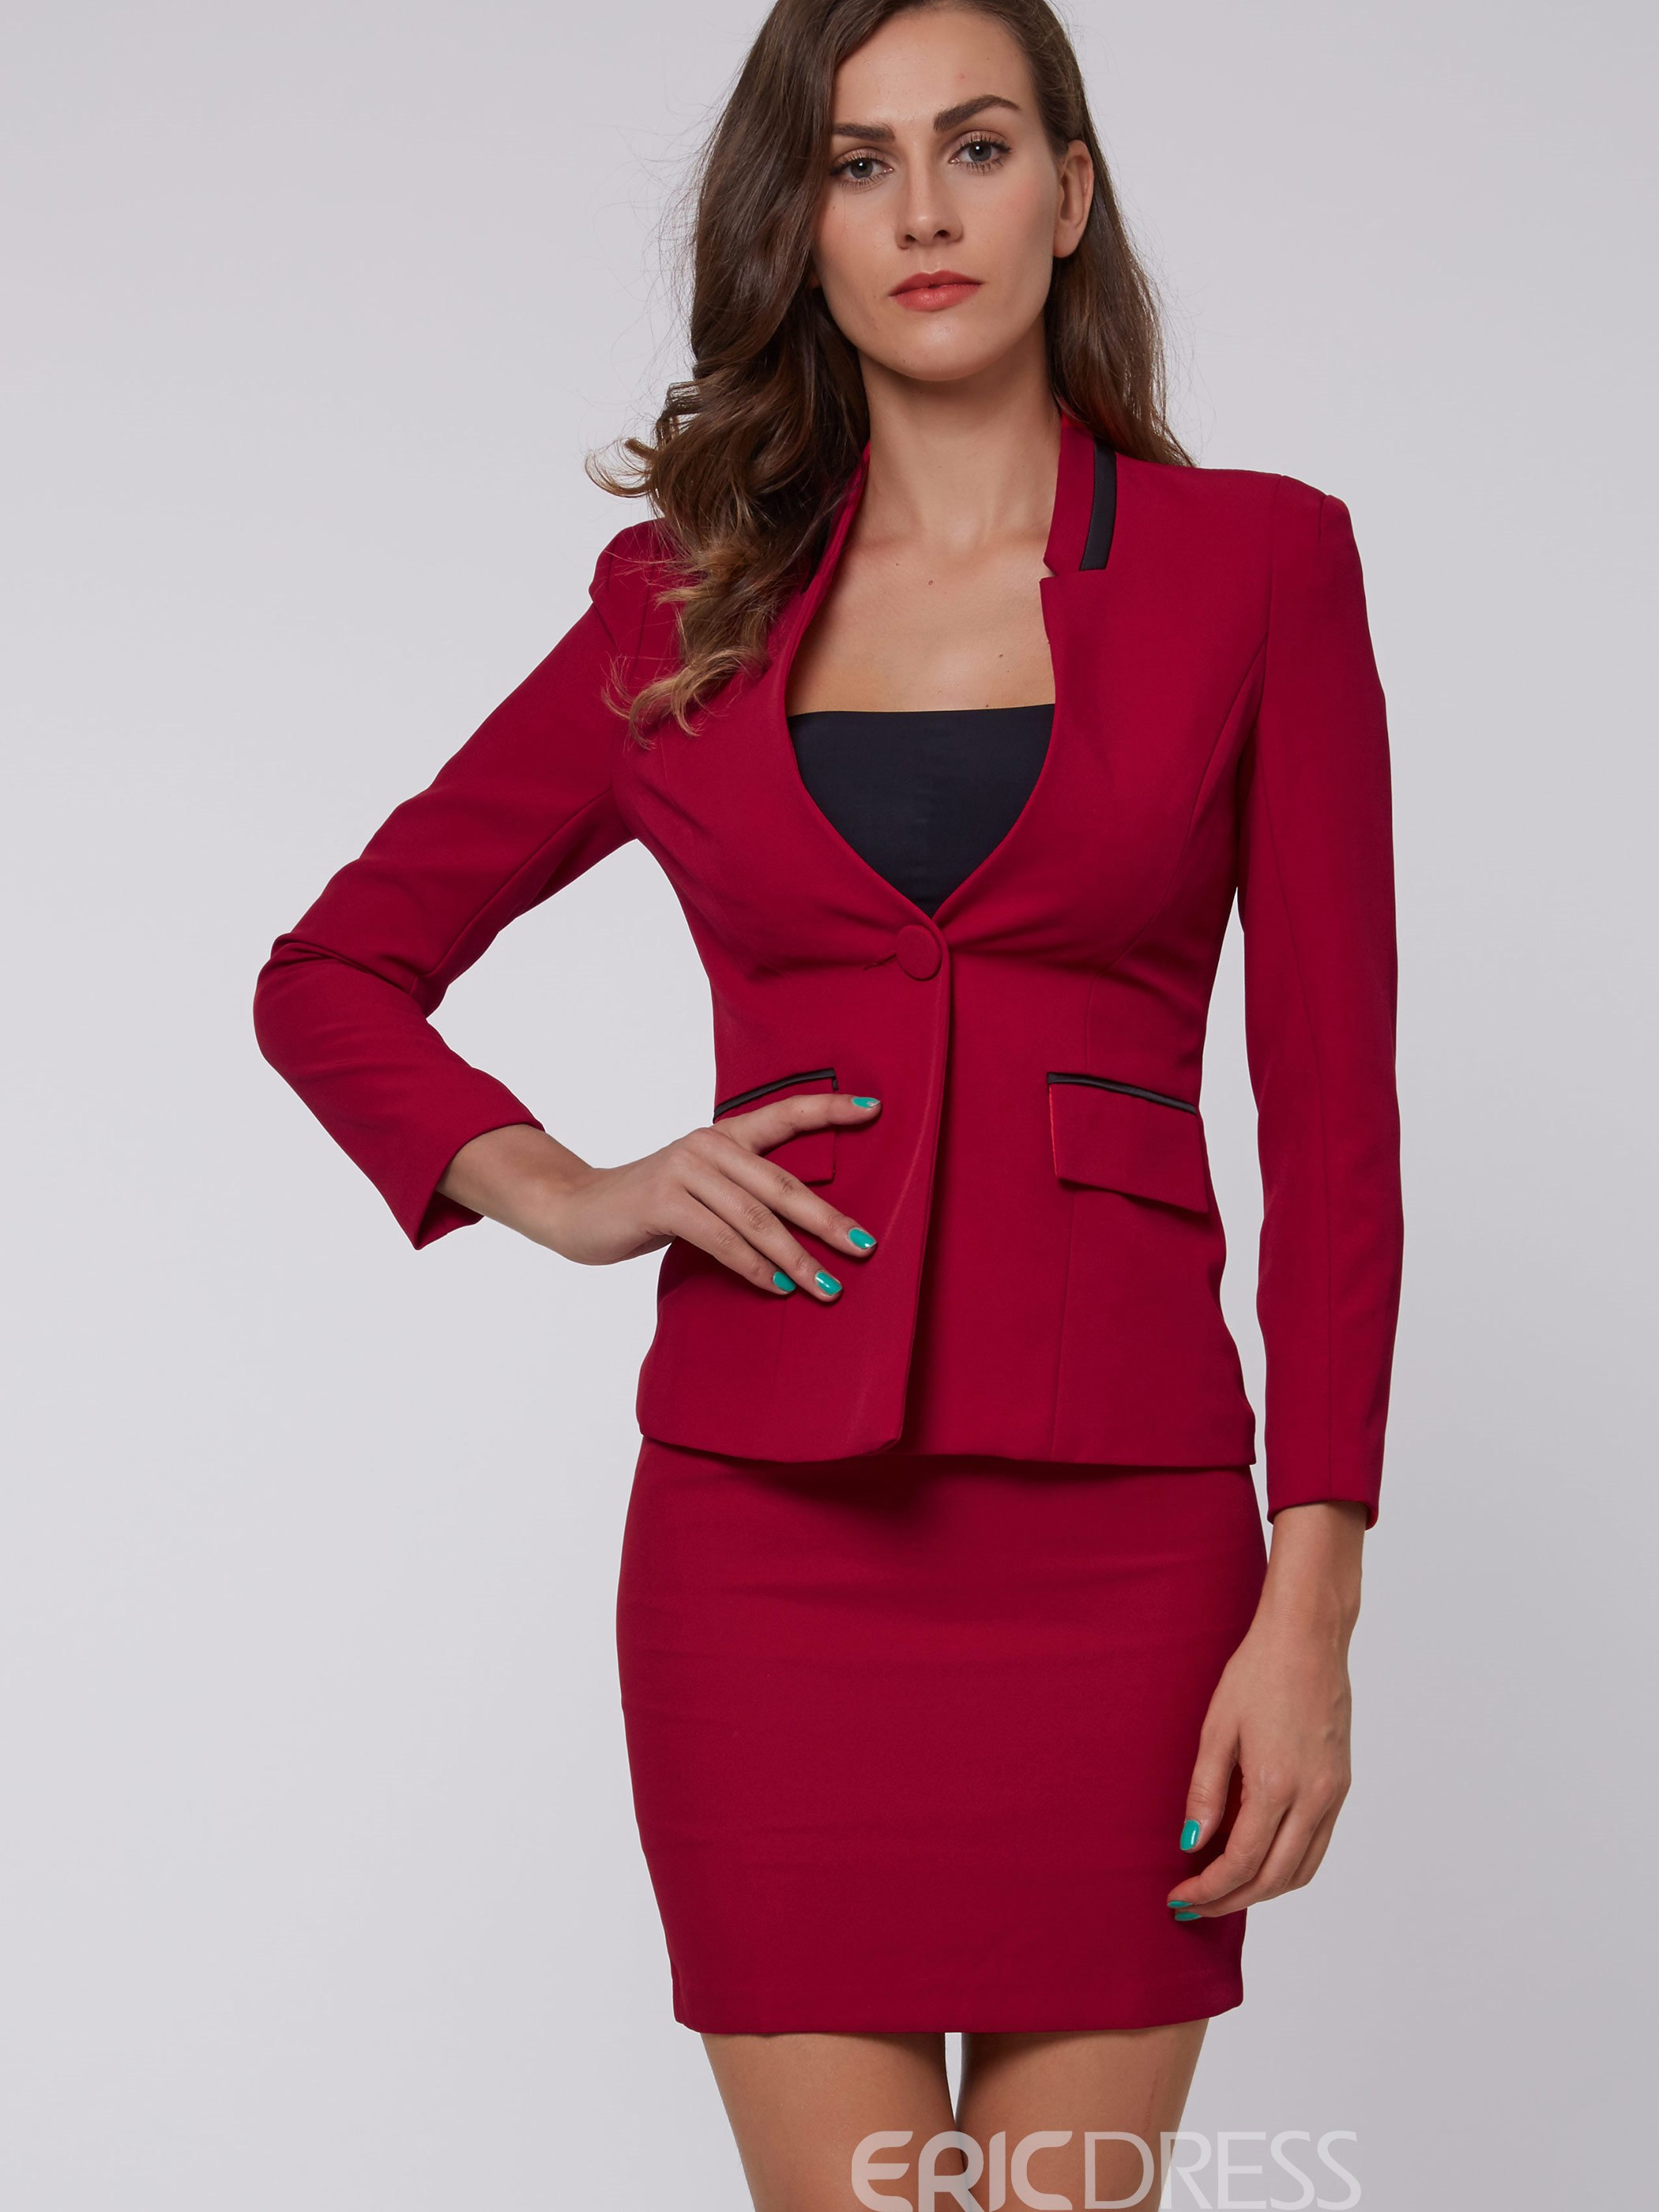 Ericdress Women S One Button Blazer And Bodycon Skirt Suit